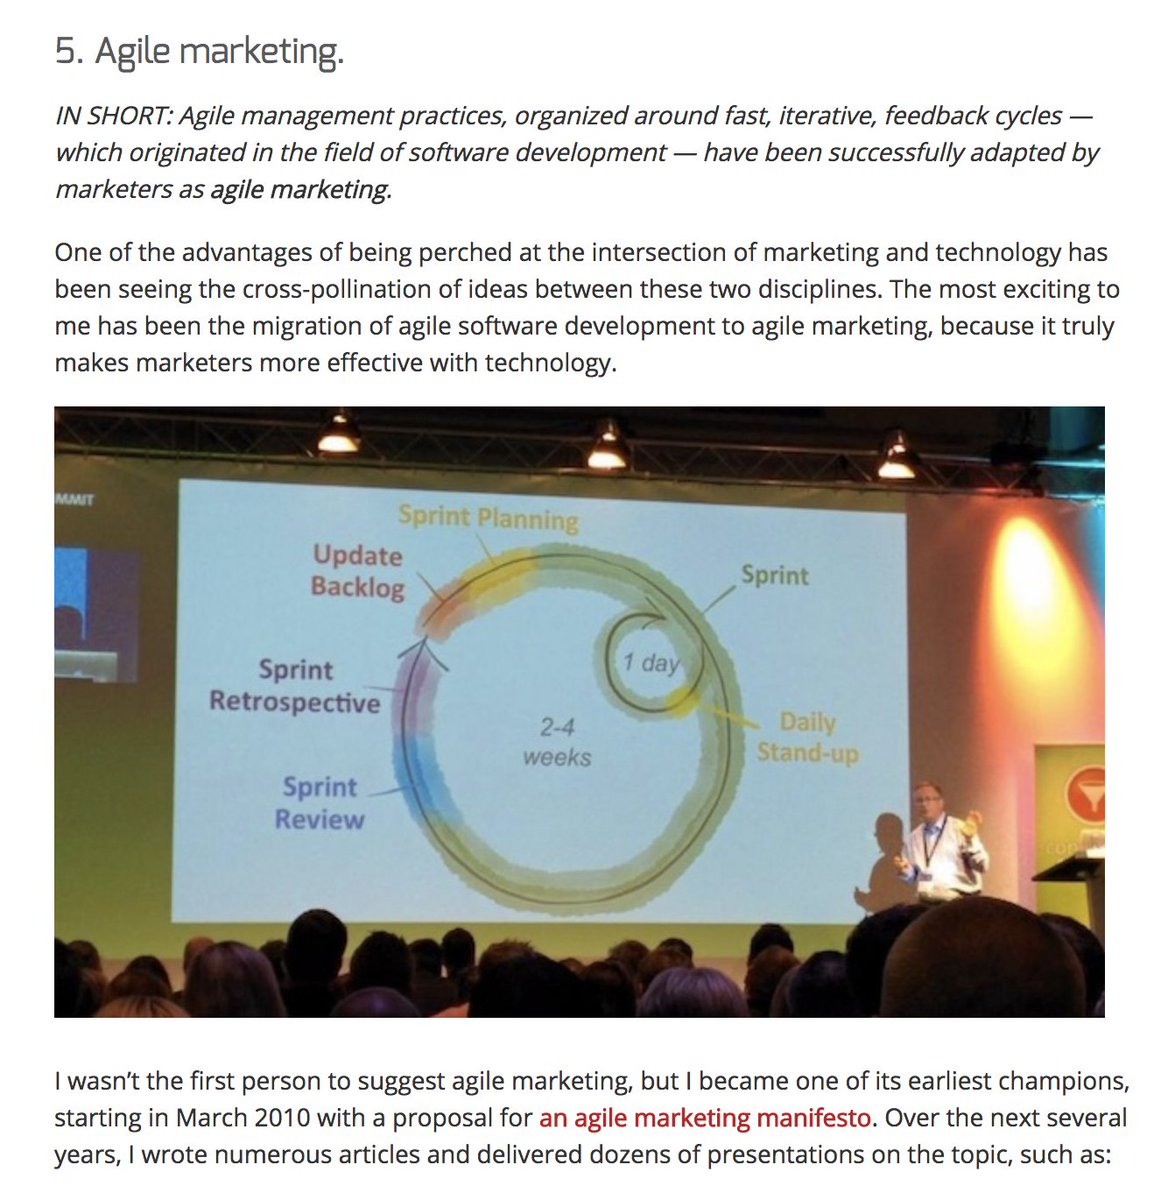 Scott Brinker On Twitter A Decade Of Martech 5 Of Top 10 Ideas Agile Marketing Https T Co N6kpnjhqde